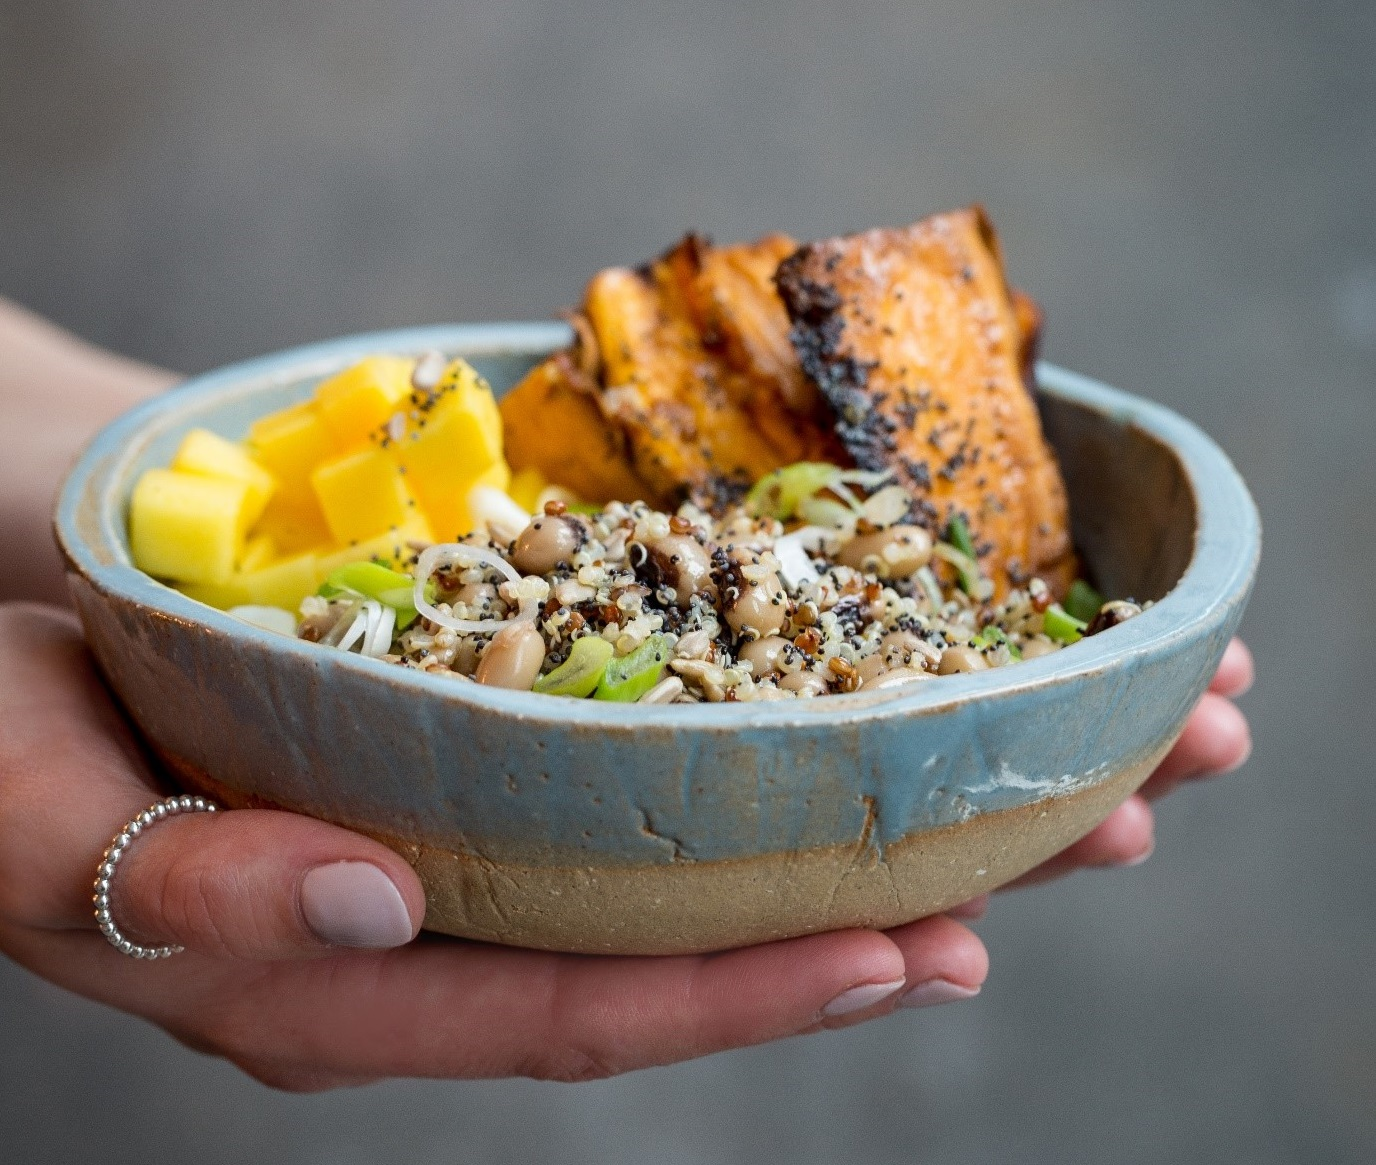 a hand holding a bowl of food